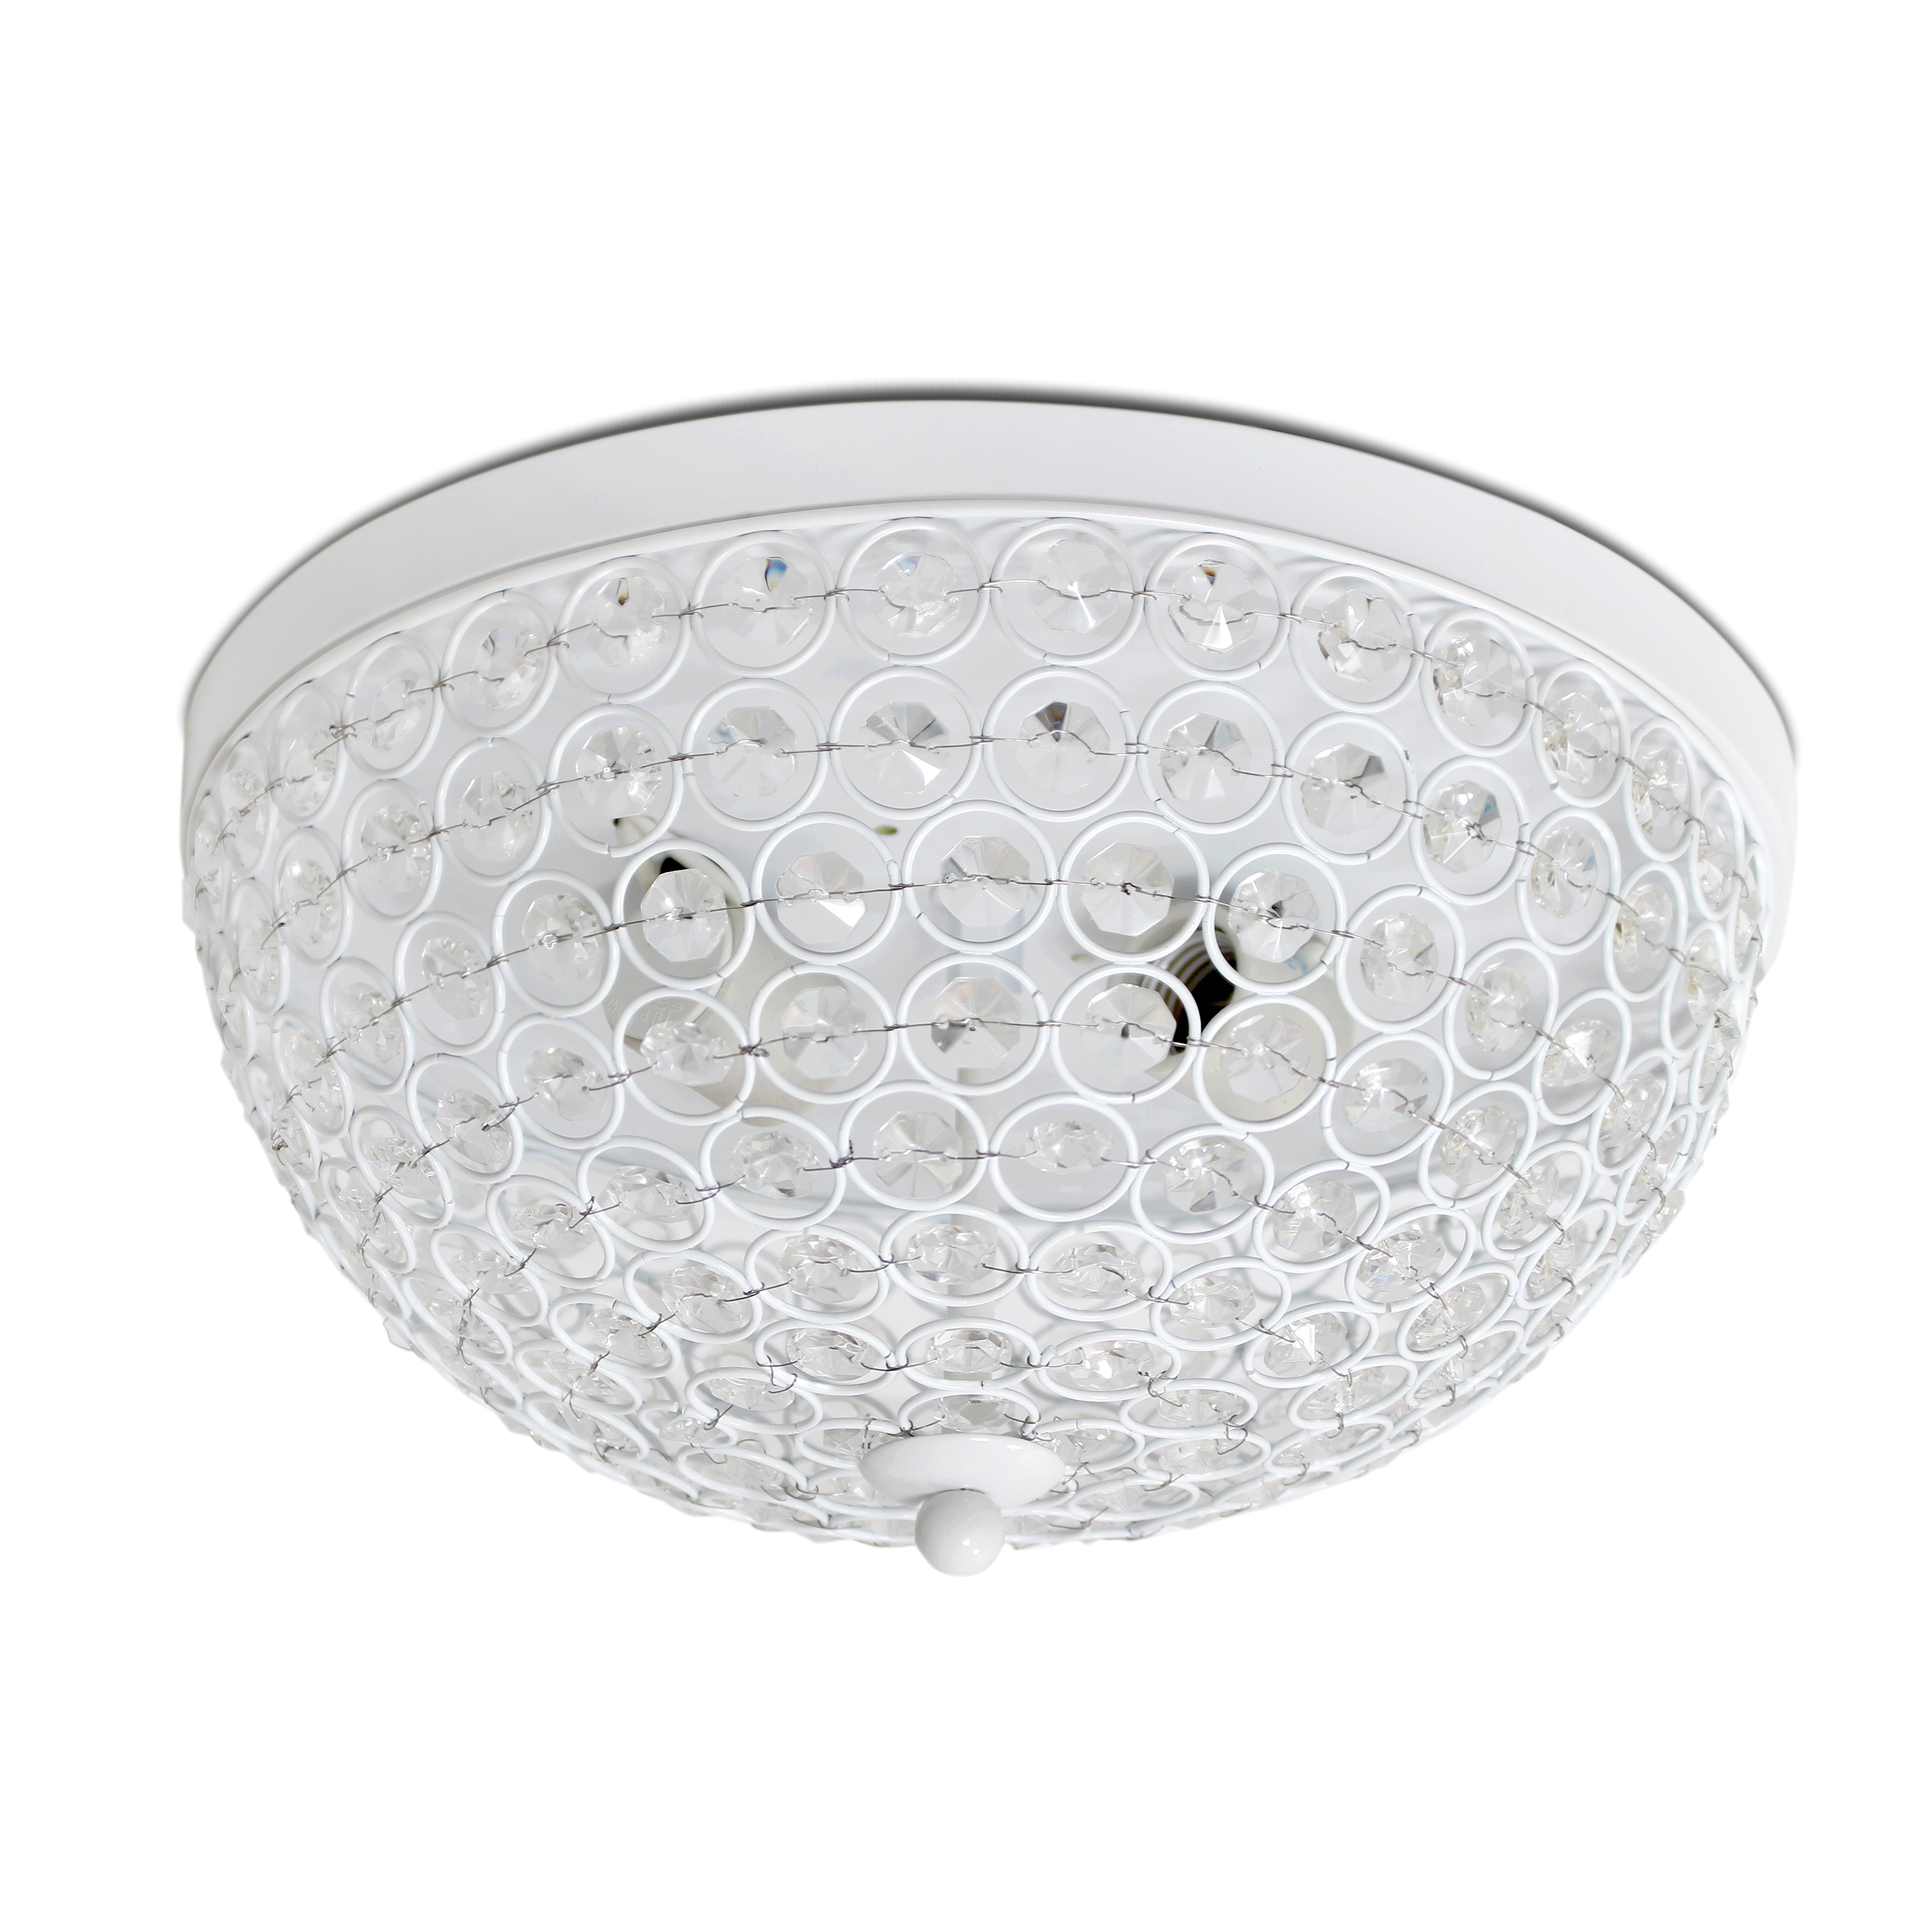 Elegant Designs 2 Light Elipse Crystal Flush Mount Ceiling Light, White